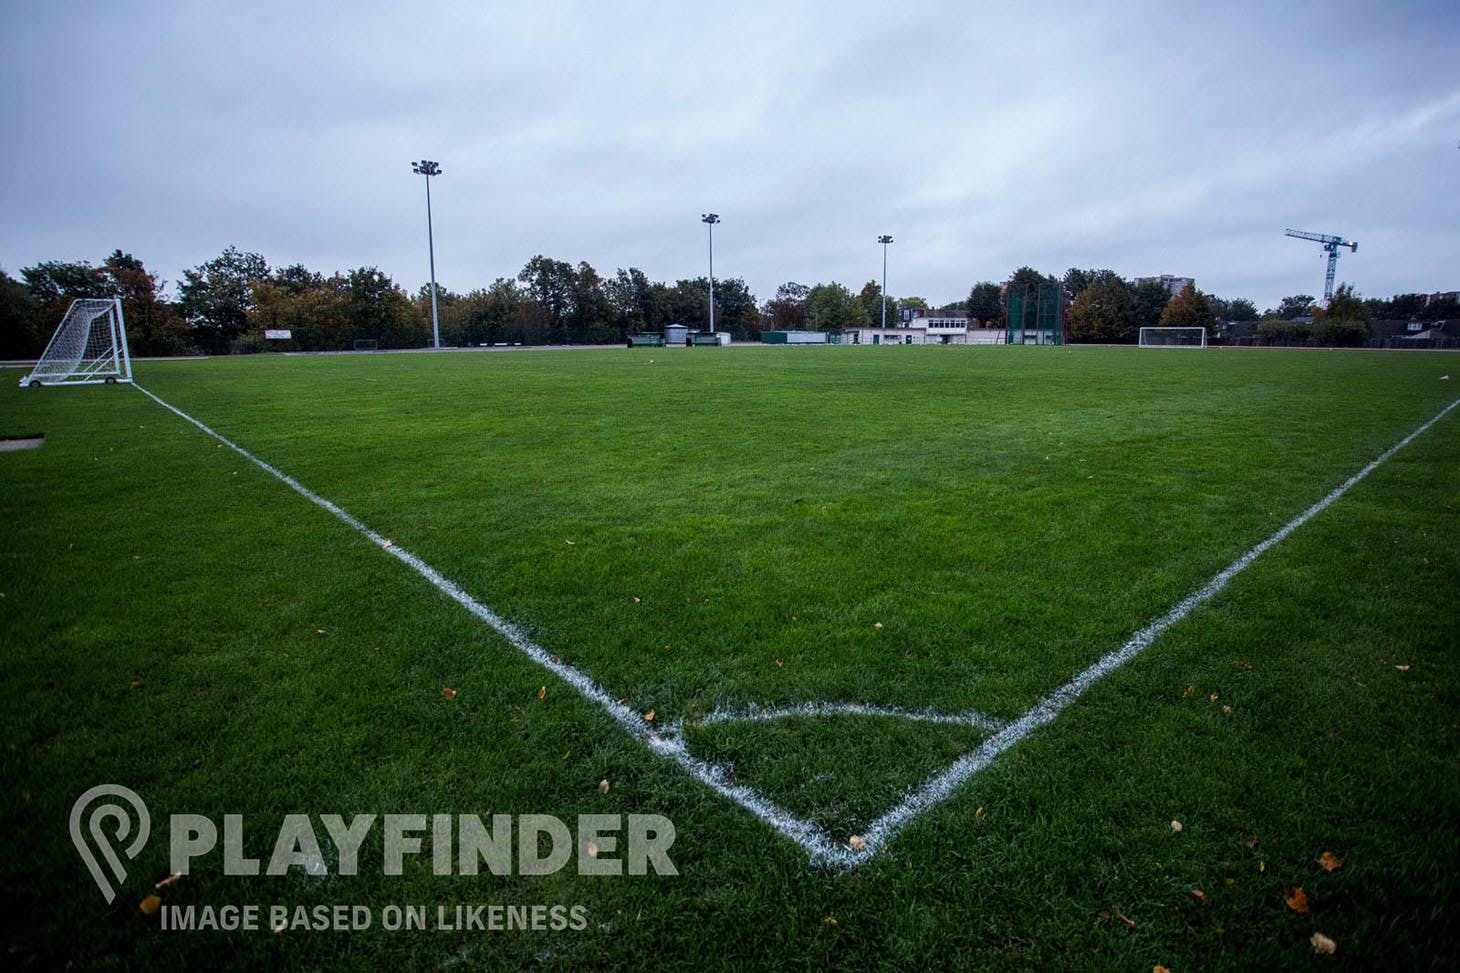 Smedley Lane Playing Fields 11 a side | Grass football pitch